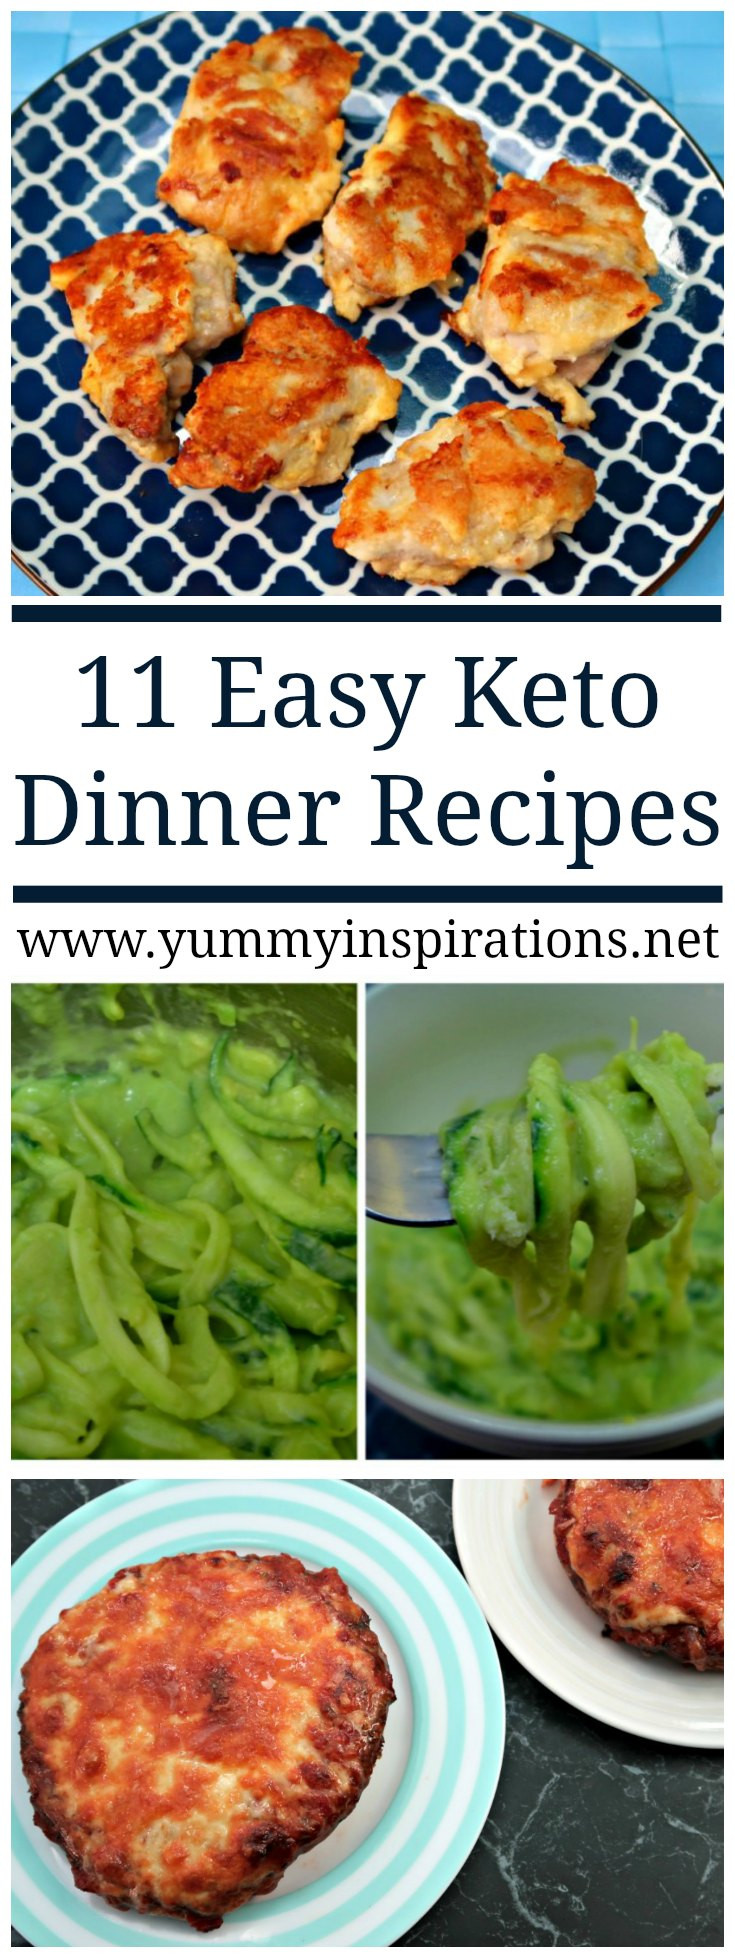 Keto Dinner Recipes Easy Family  11 Easy Keto Dinner Recipes Quick Low Carb Ketogenic